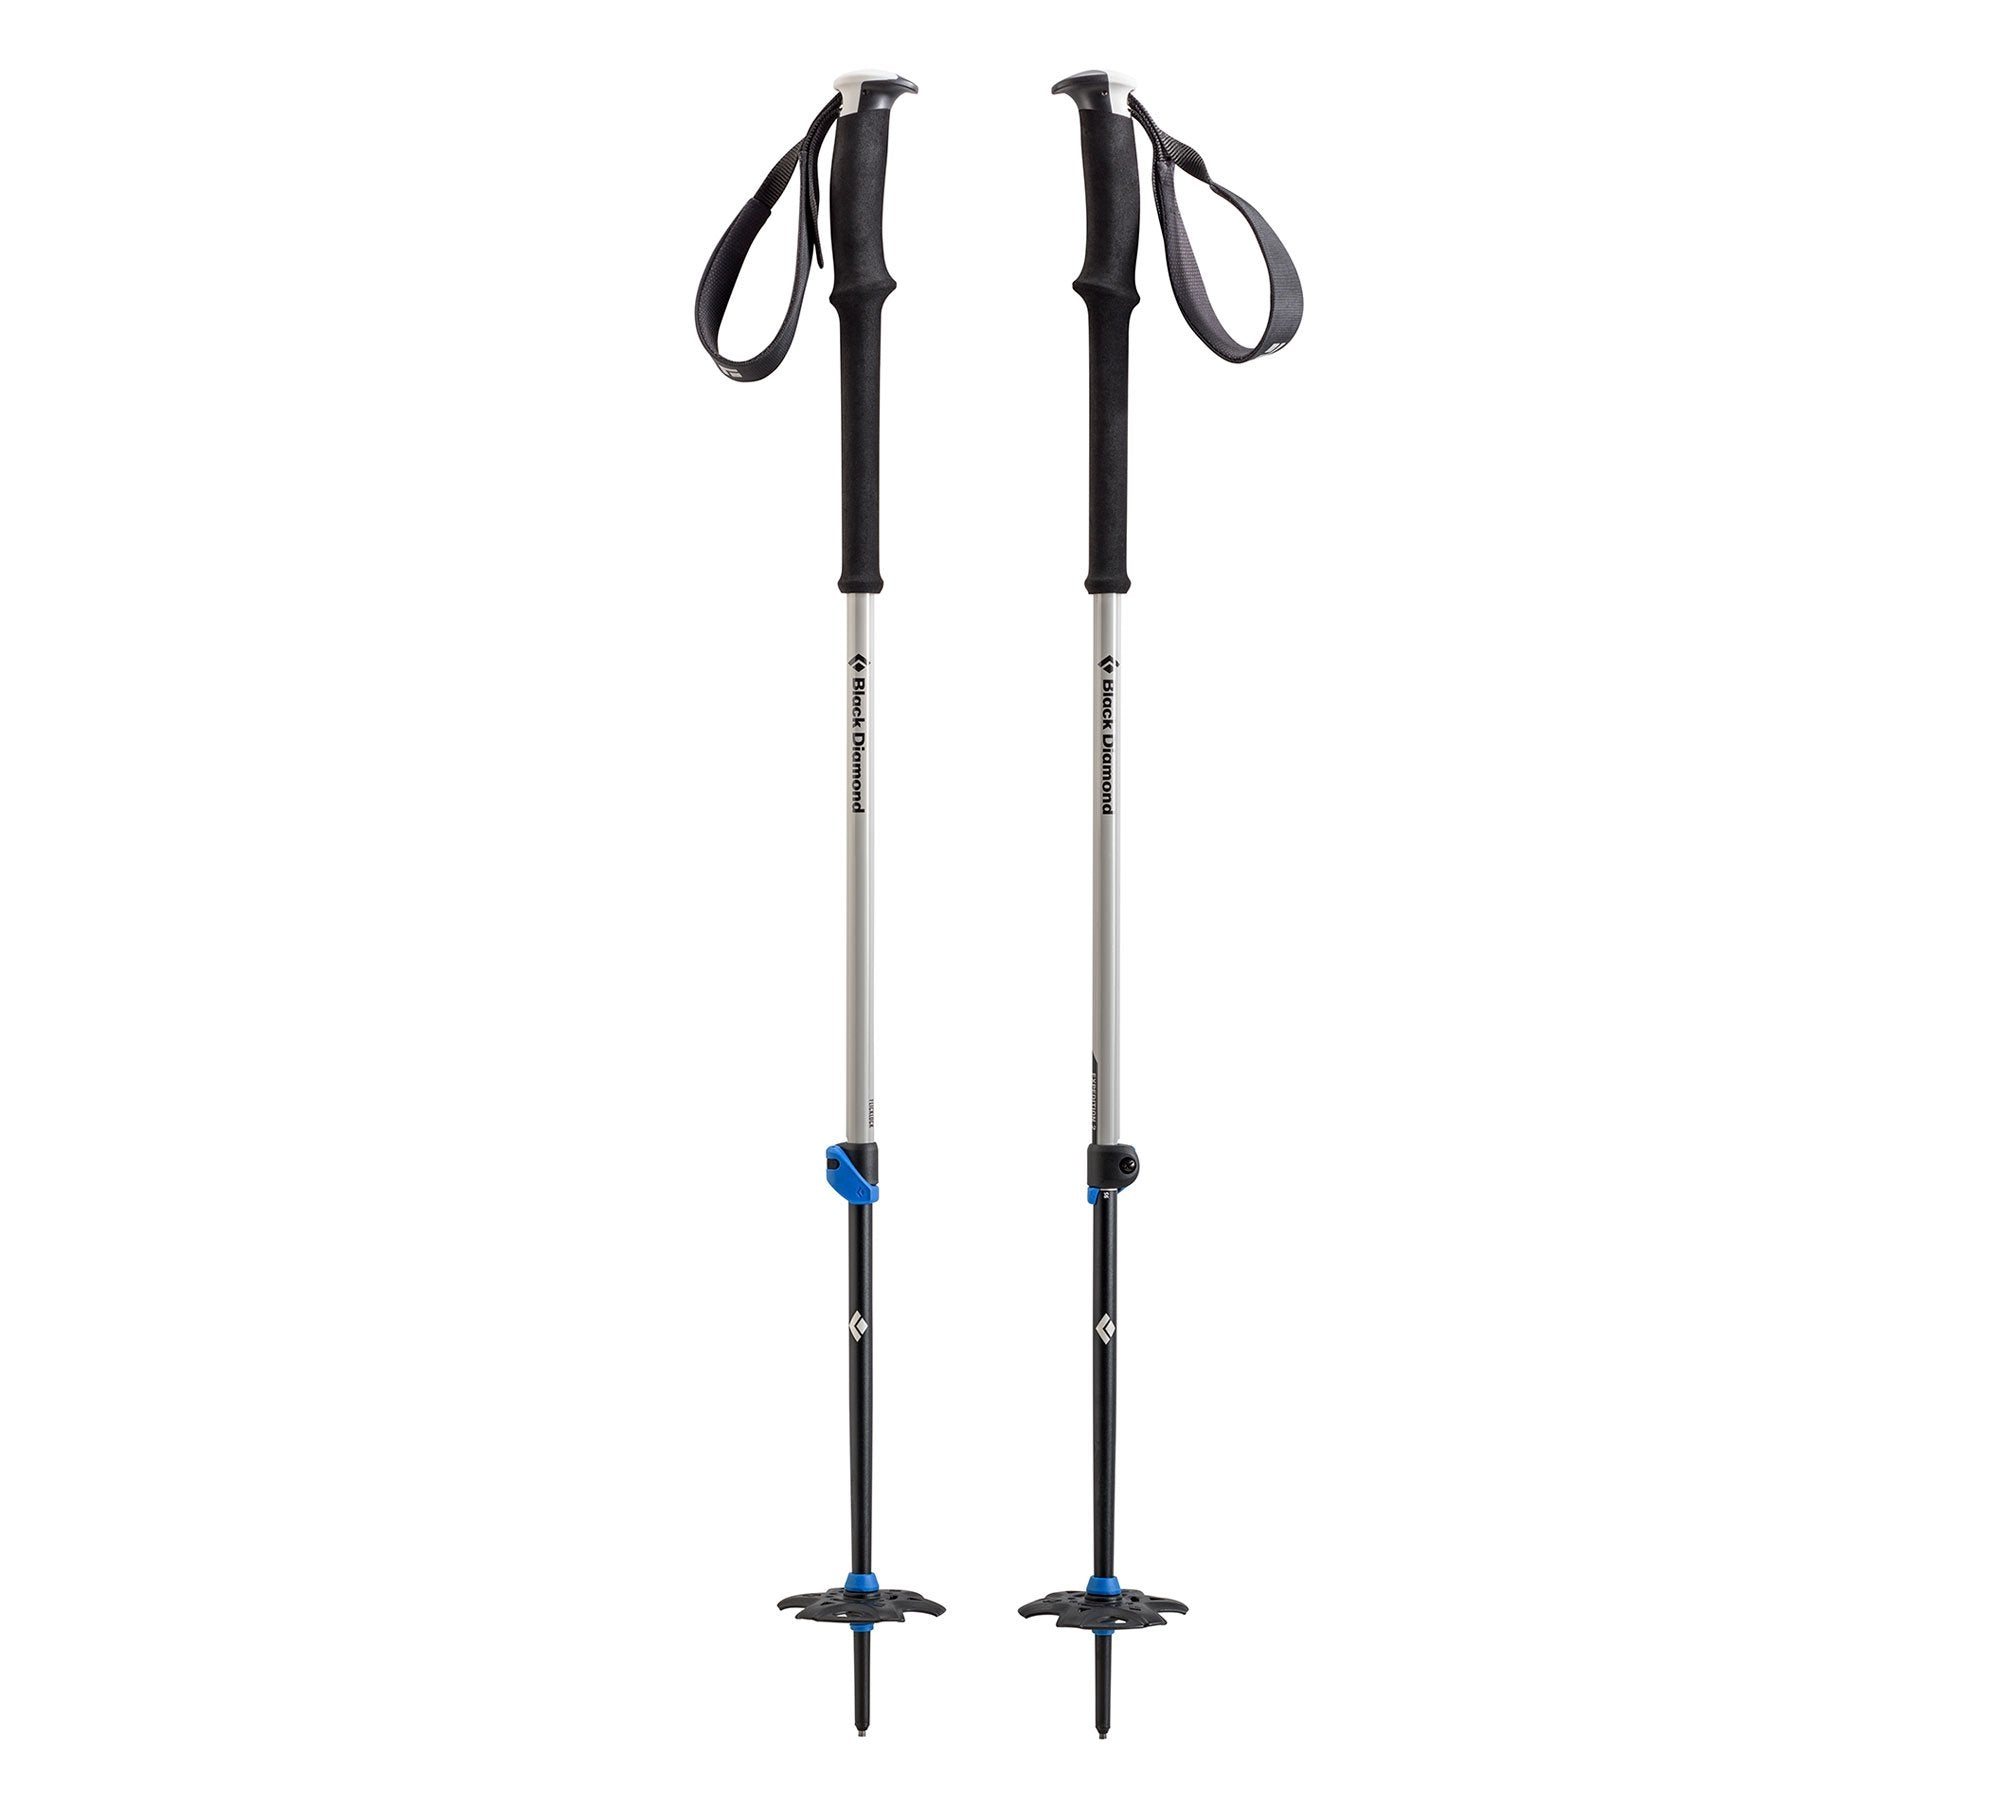 Black Diamond Expedition 2 Pro Ski Poles